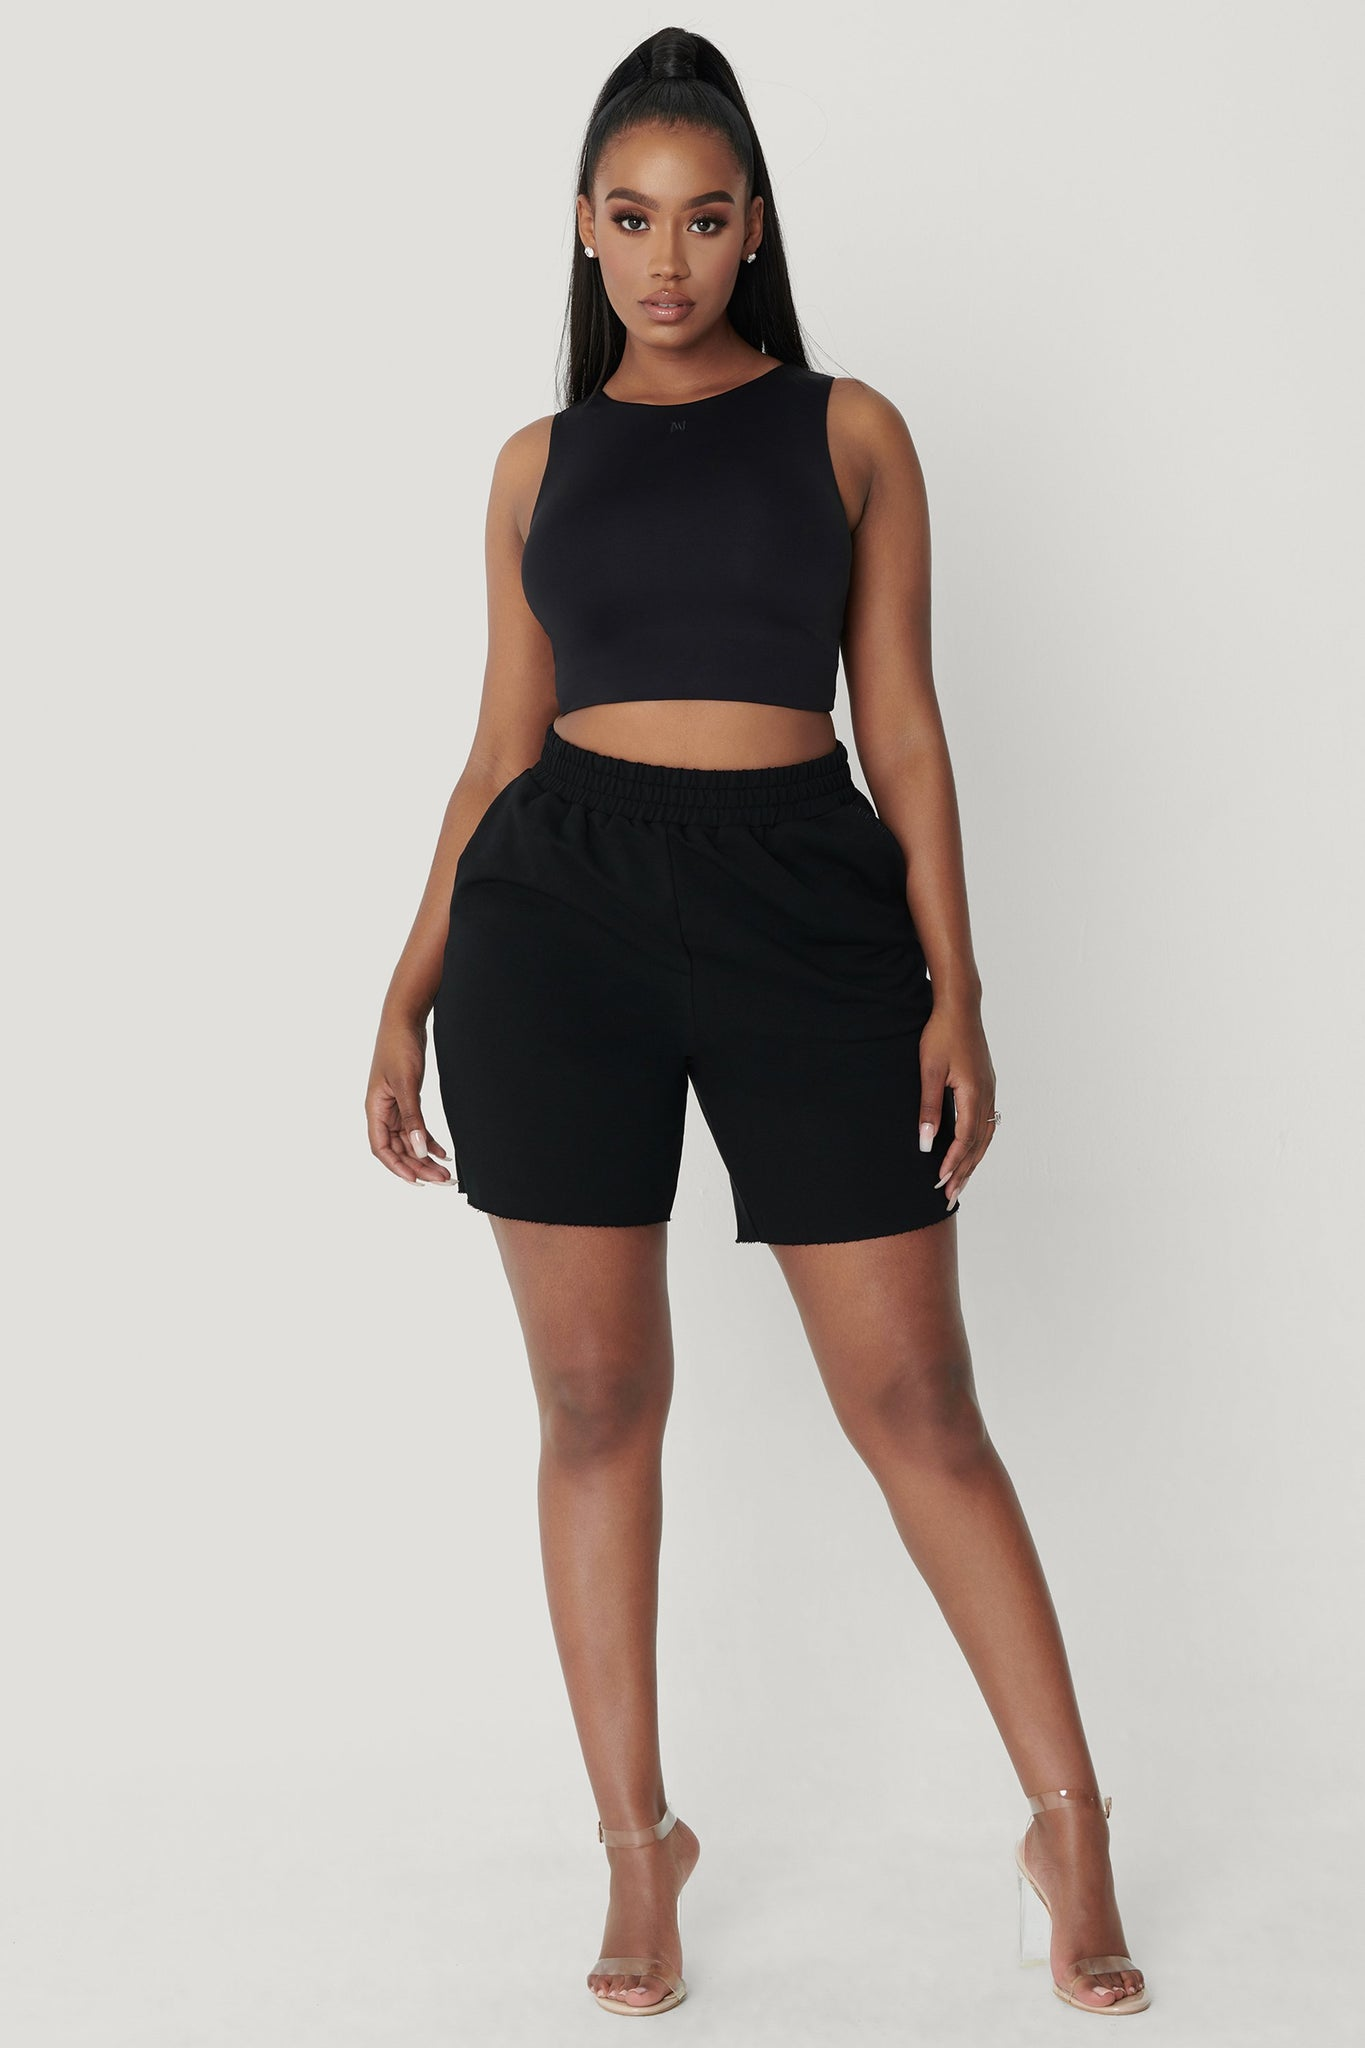 Lina Sleeveless Crop Top - Black - MESHKI